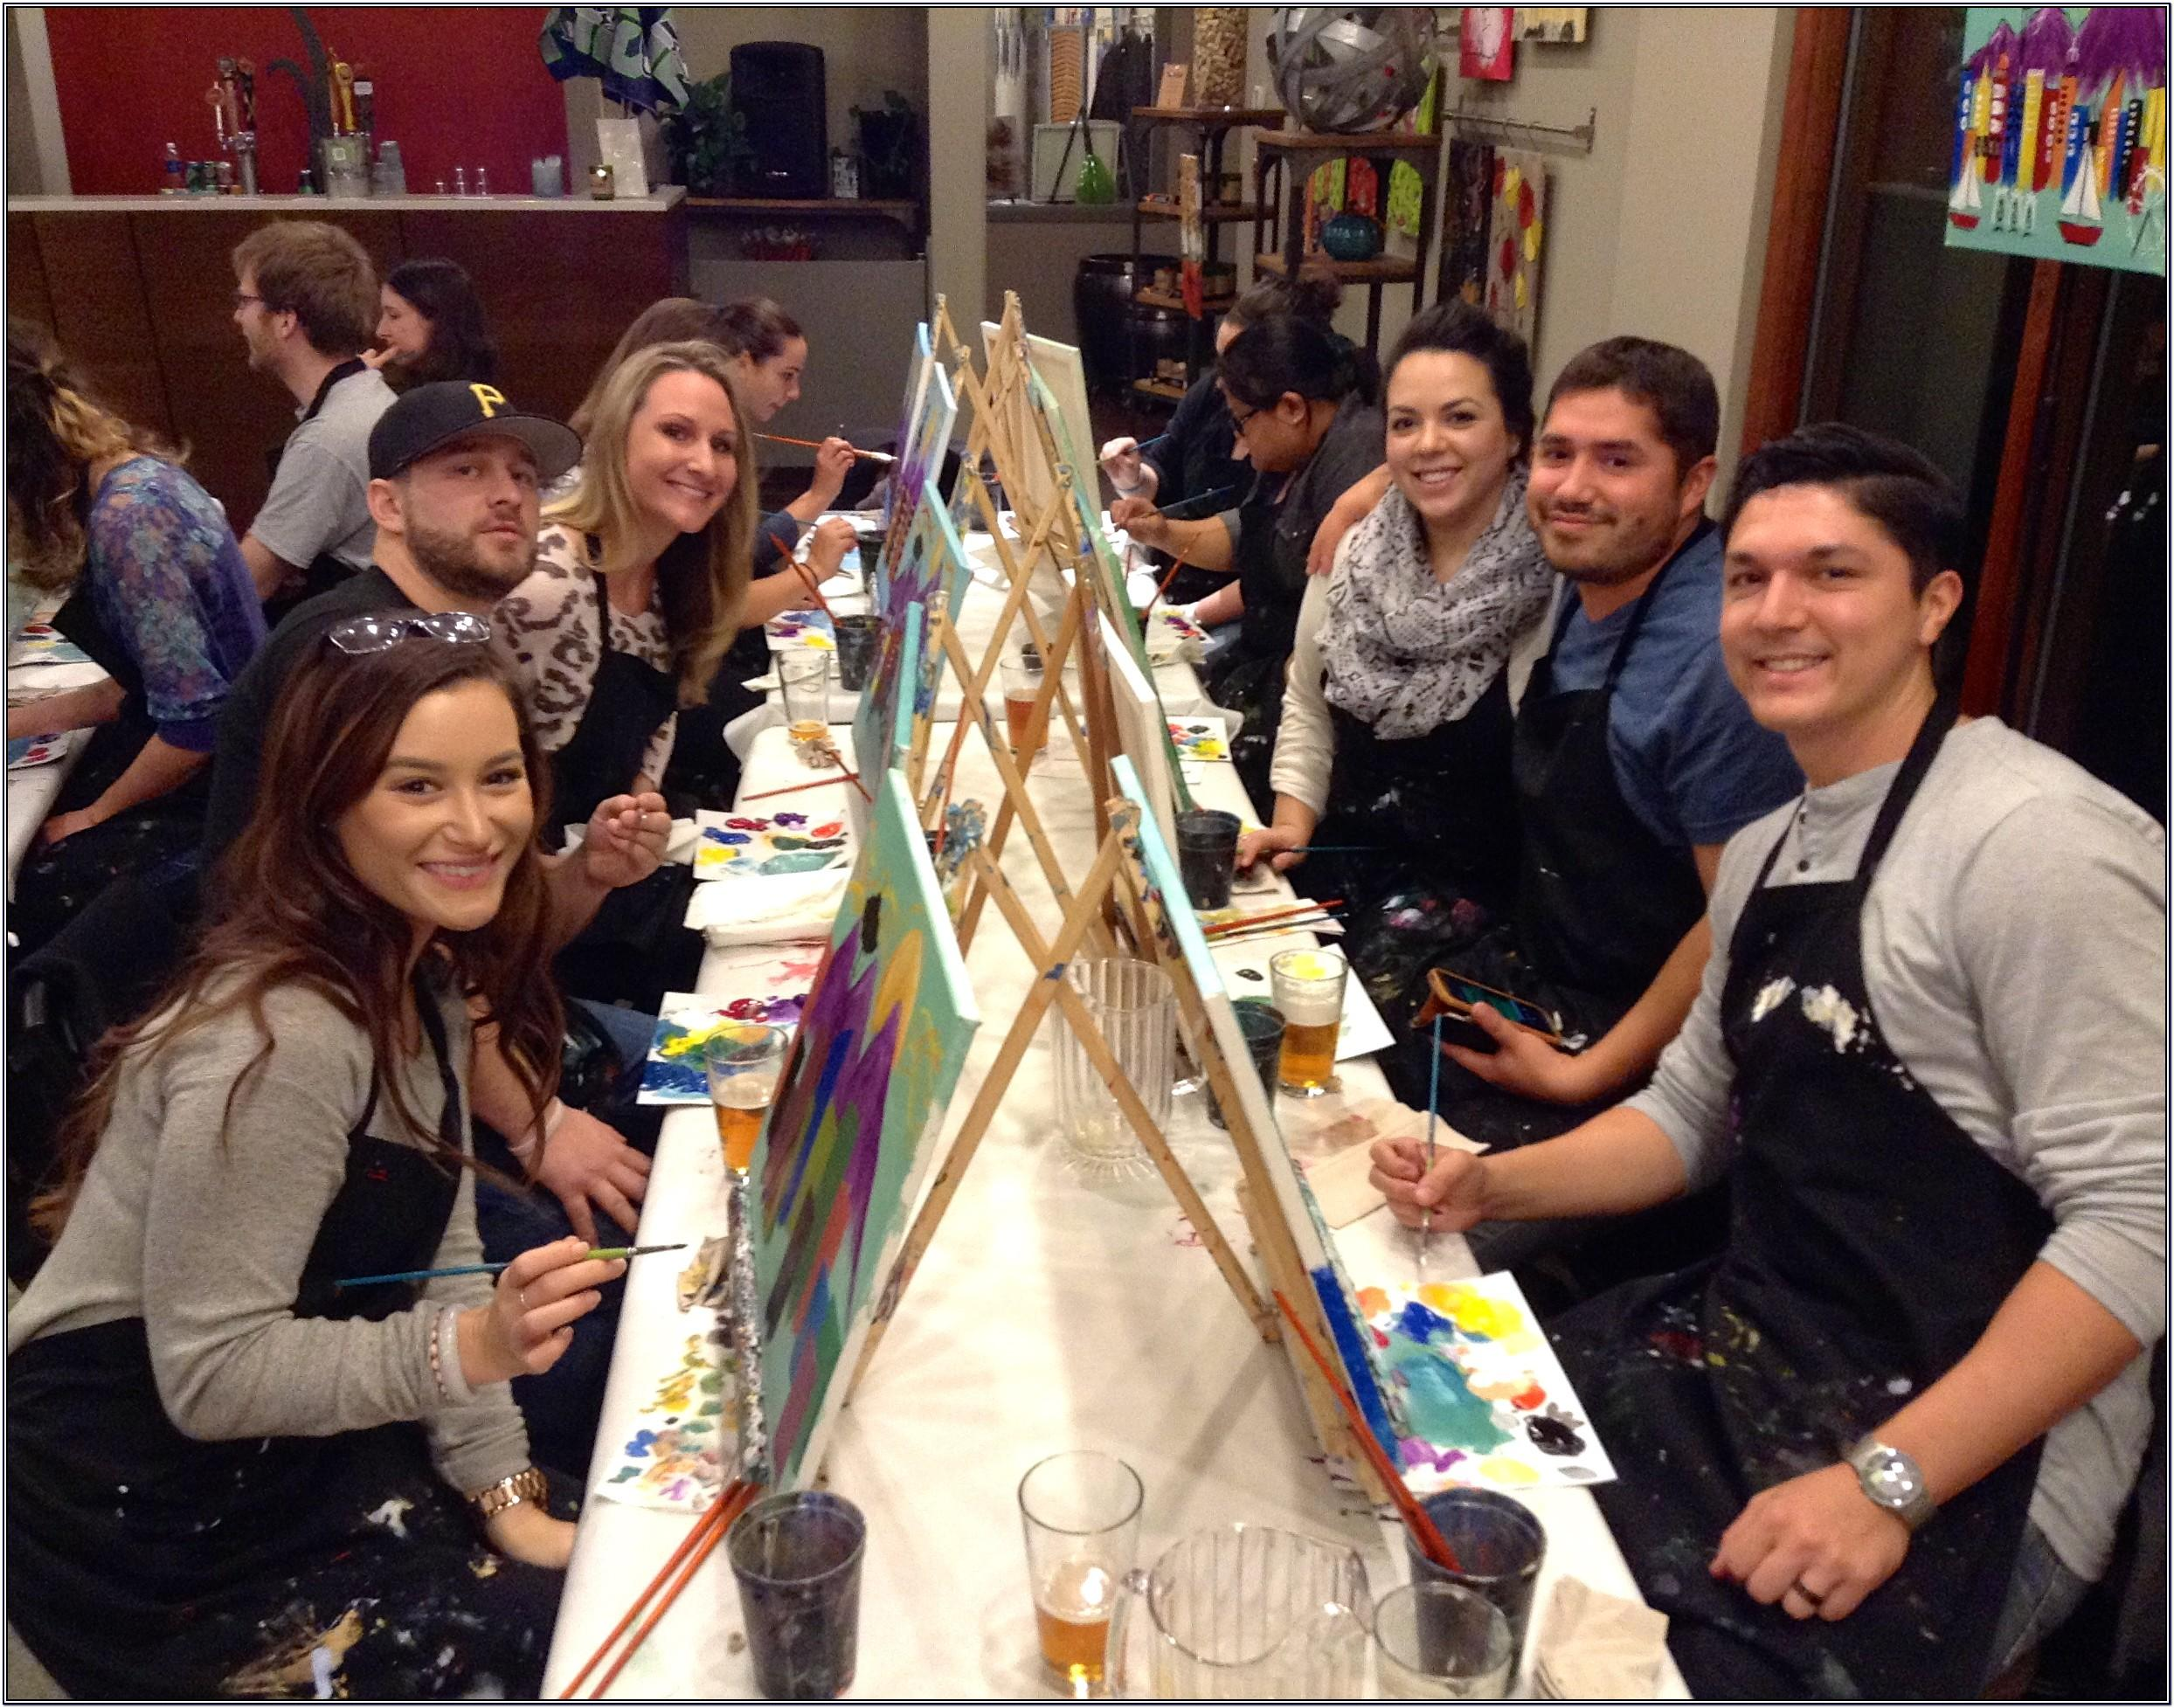 Group Painting Party Ideas